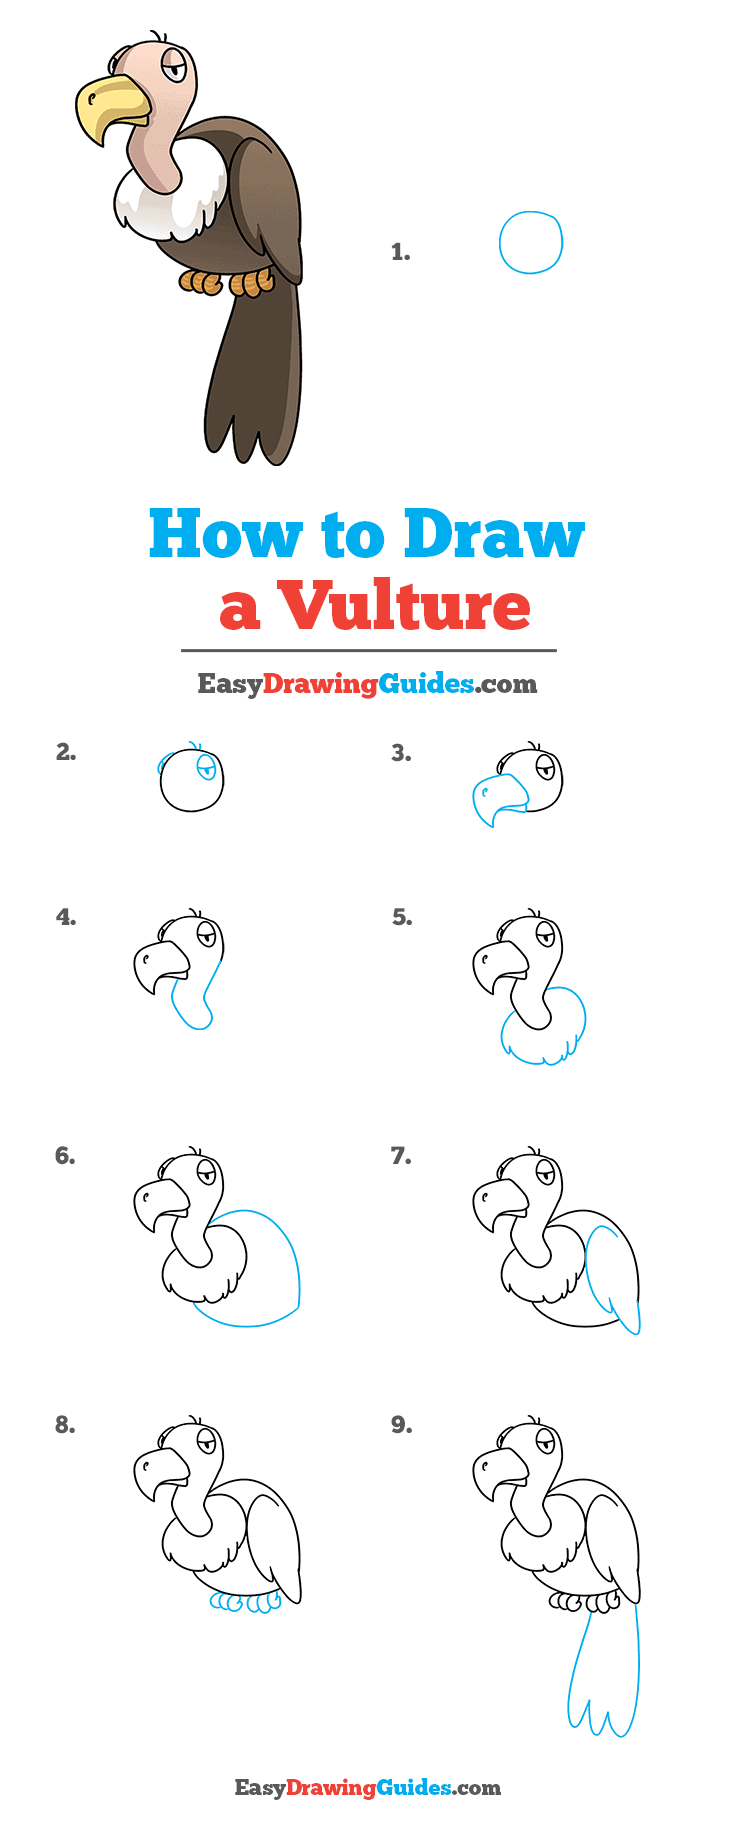 How to Draw Vulture